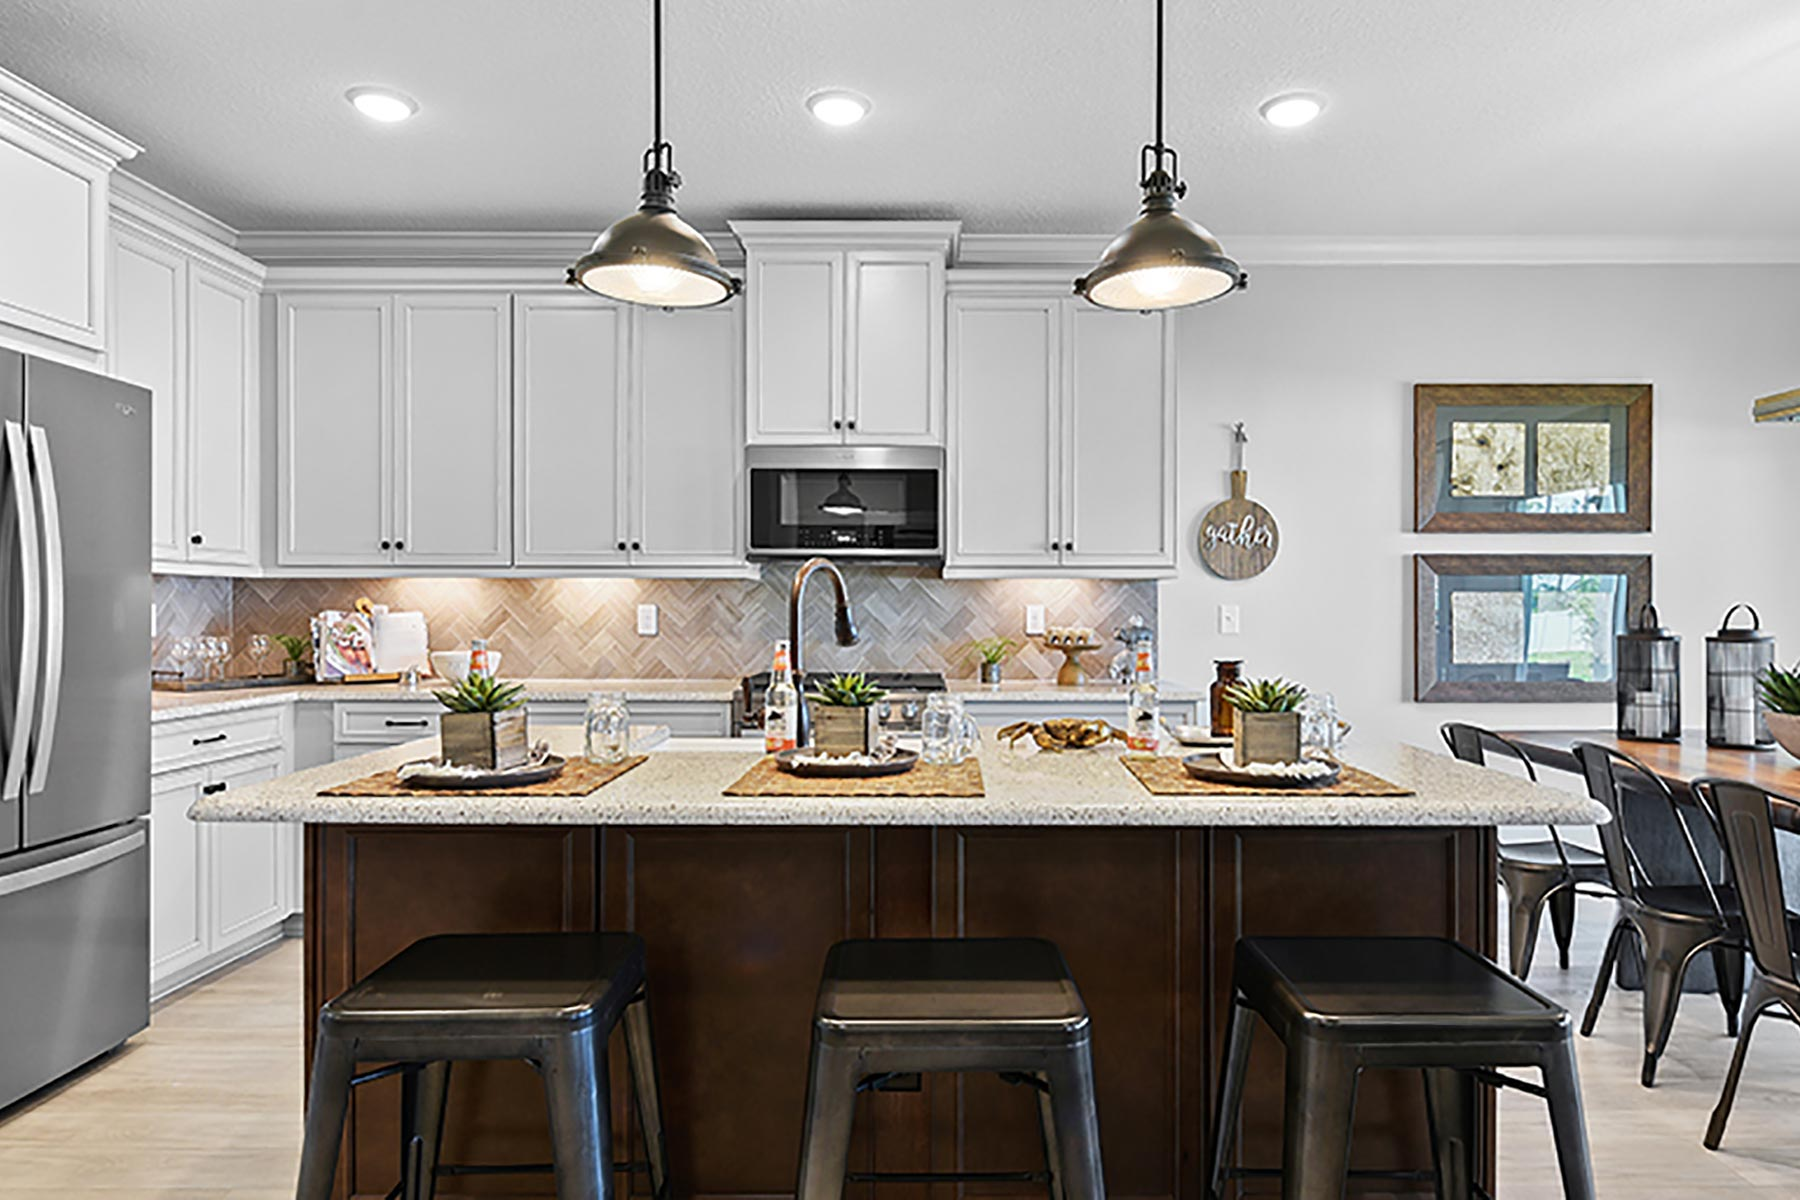 Wells Creek Kitchen in Jacksonville Florida by Mattamy Homes